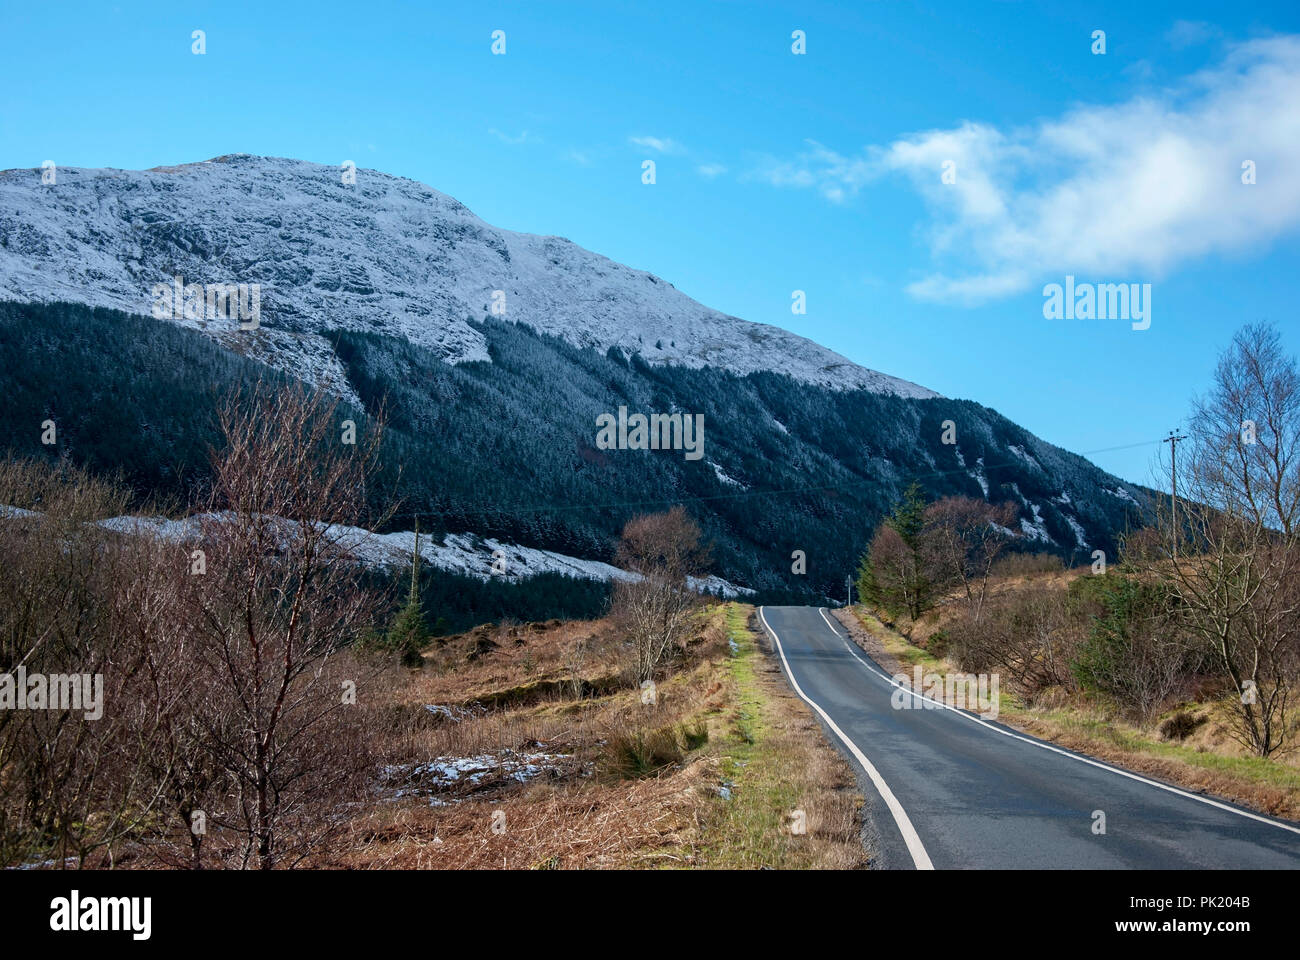 Glen Lean and Cruach Neuran on a Winters Day Clachaig Dunoon Argyll Scotland United Kingdom winter wintry landscape blue sky skies over snow covered m - Stock Image